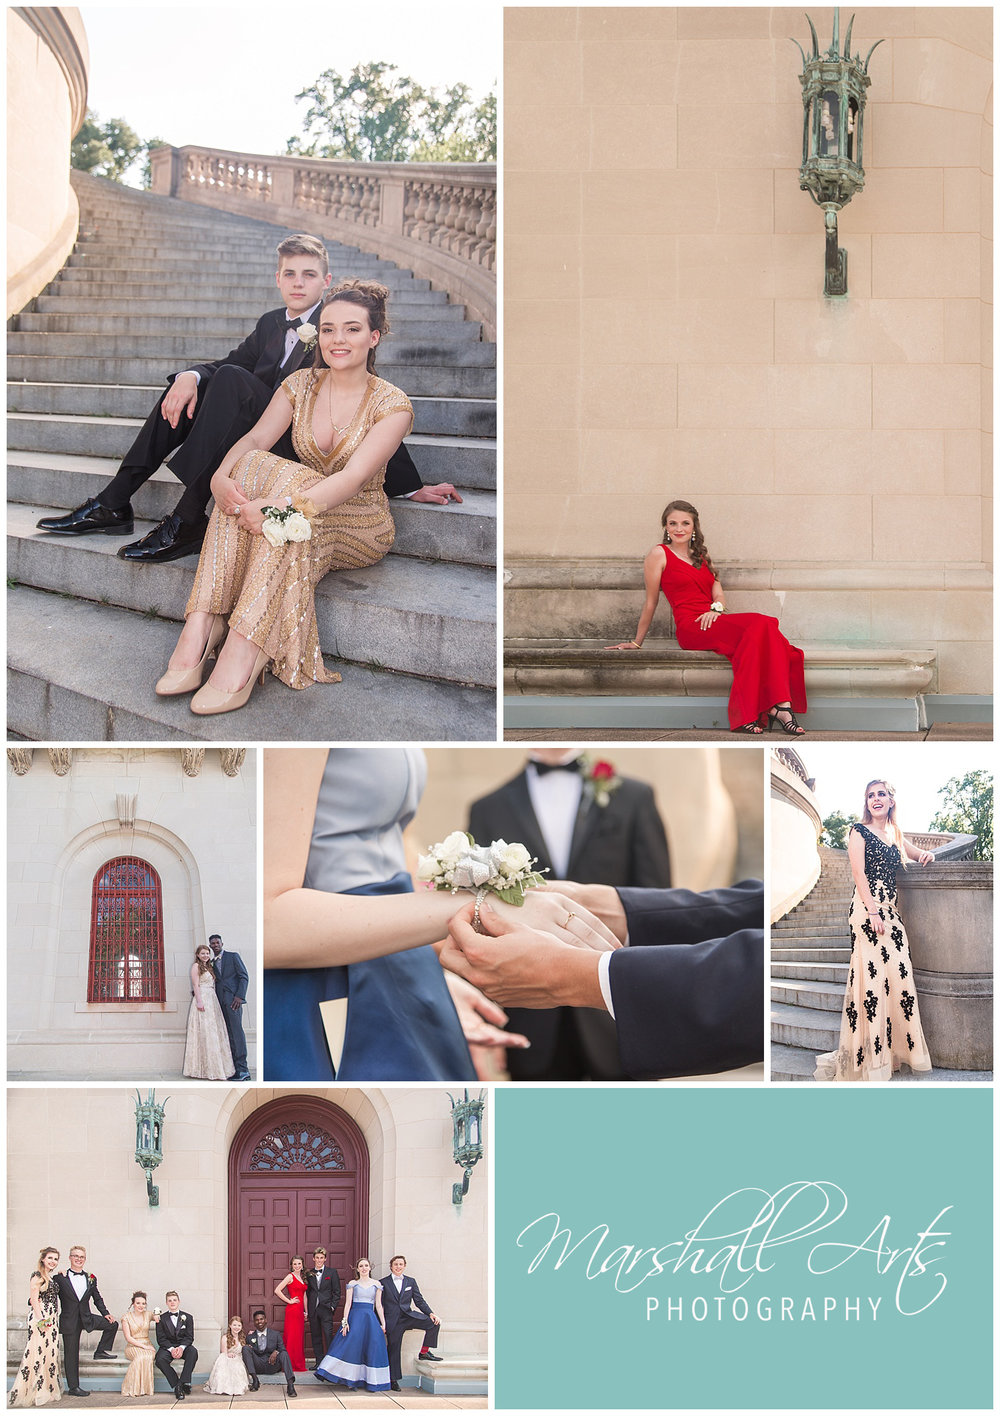 Dramatic Prom Pictures - Marshall Arts Photography